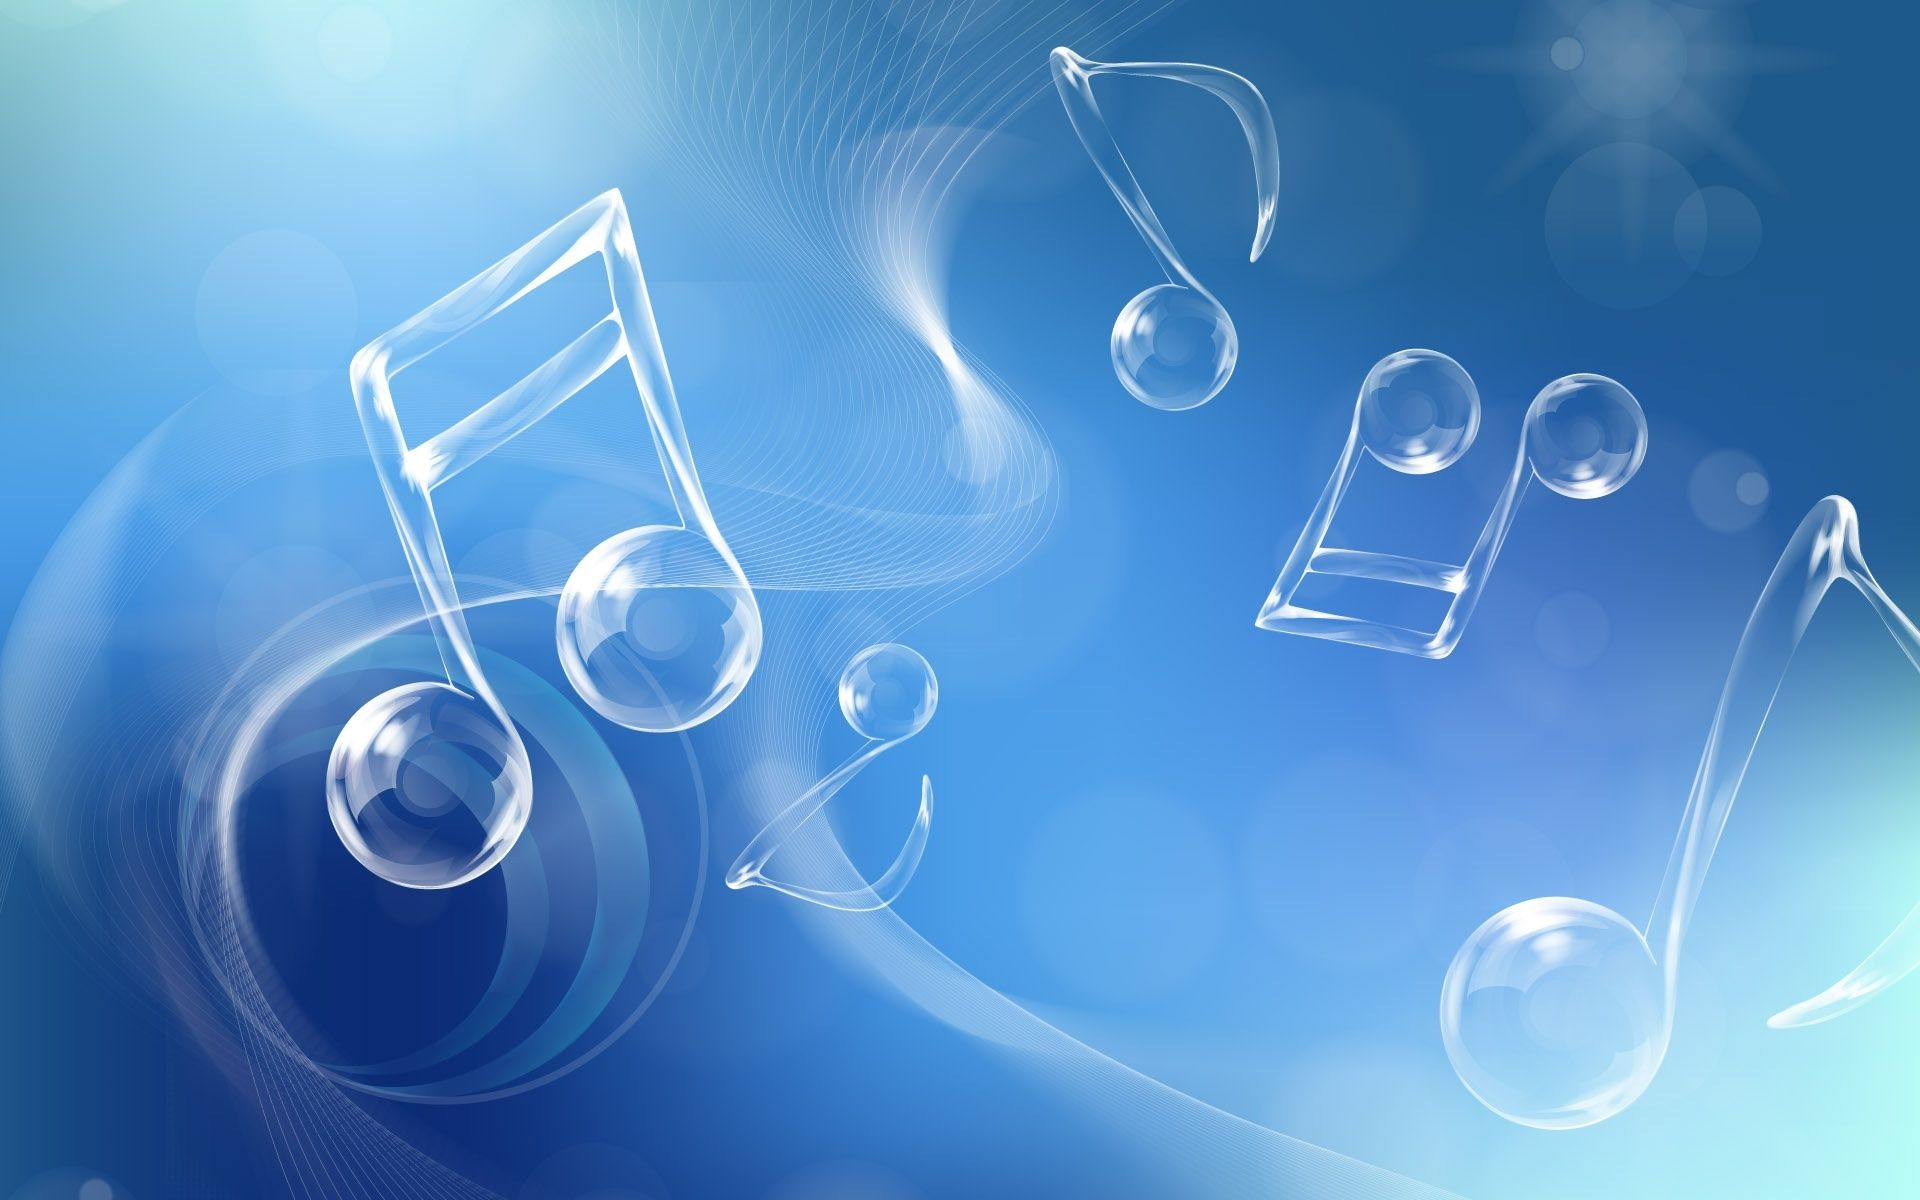 blue music wallpaper presentation backgrounds